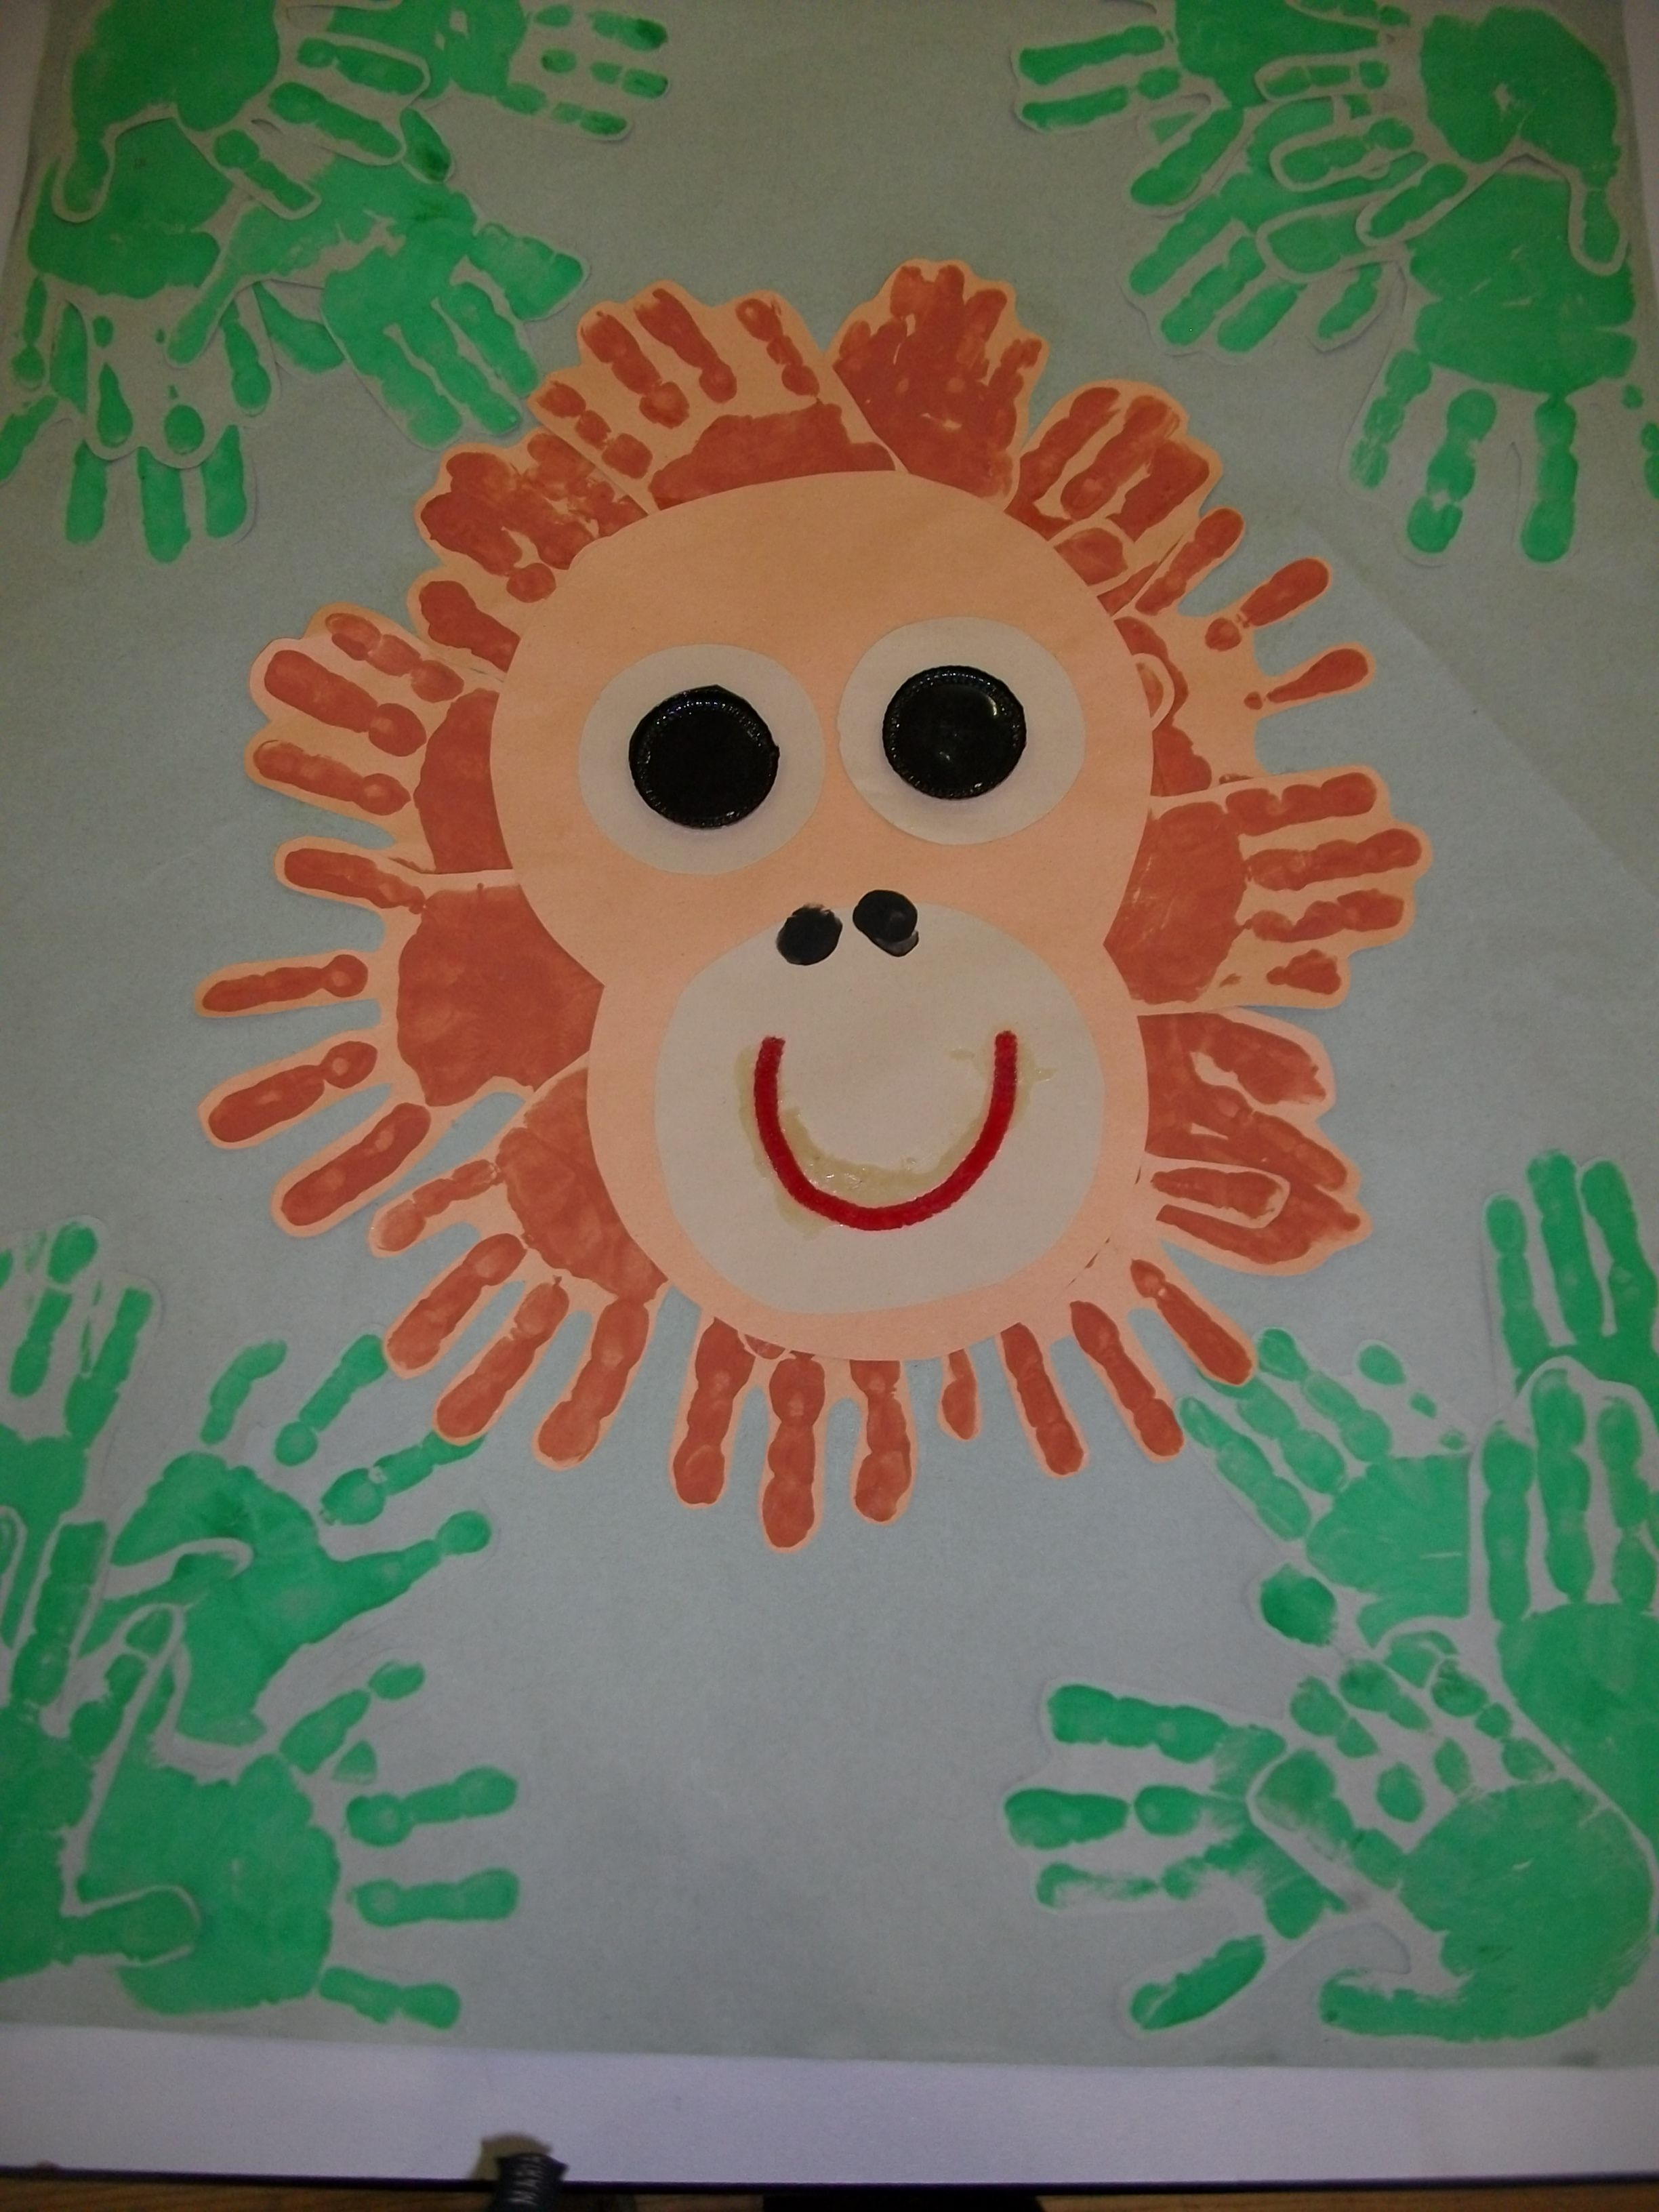 Hands For Orangutans